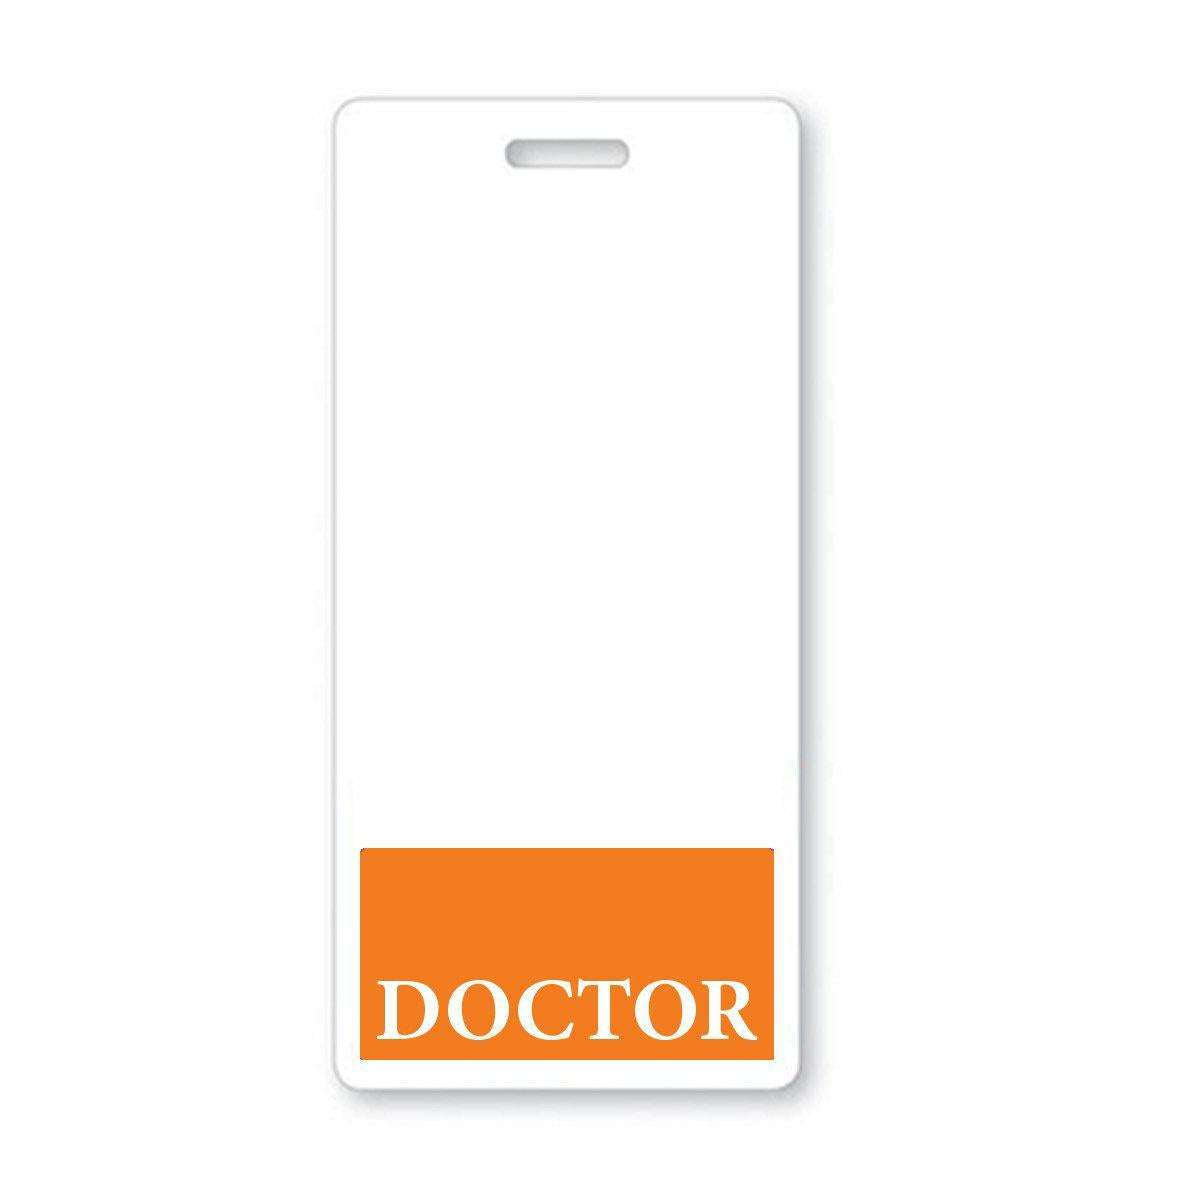 """Doctor"" Vertical Badge Buddy with Orange Border"